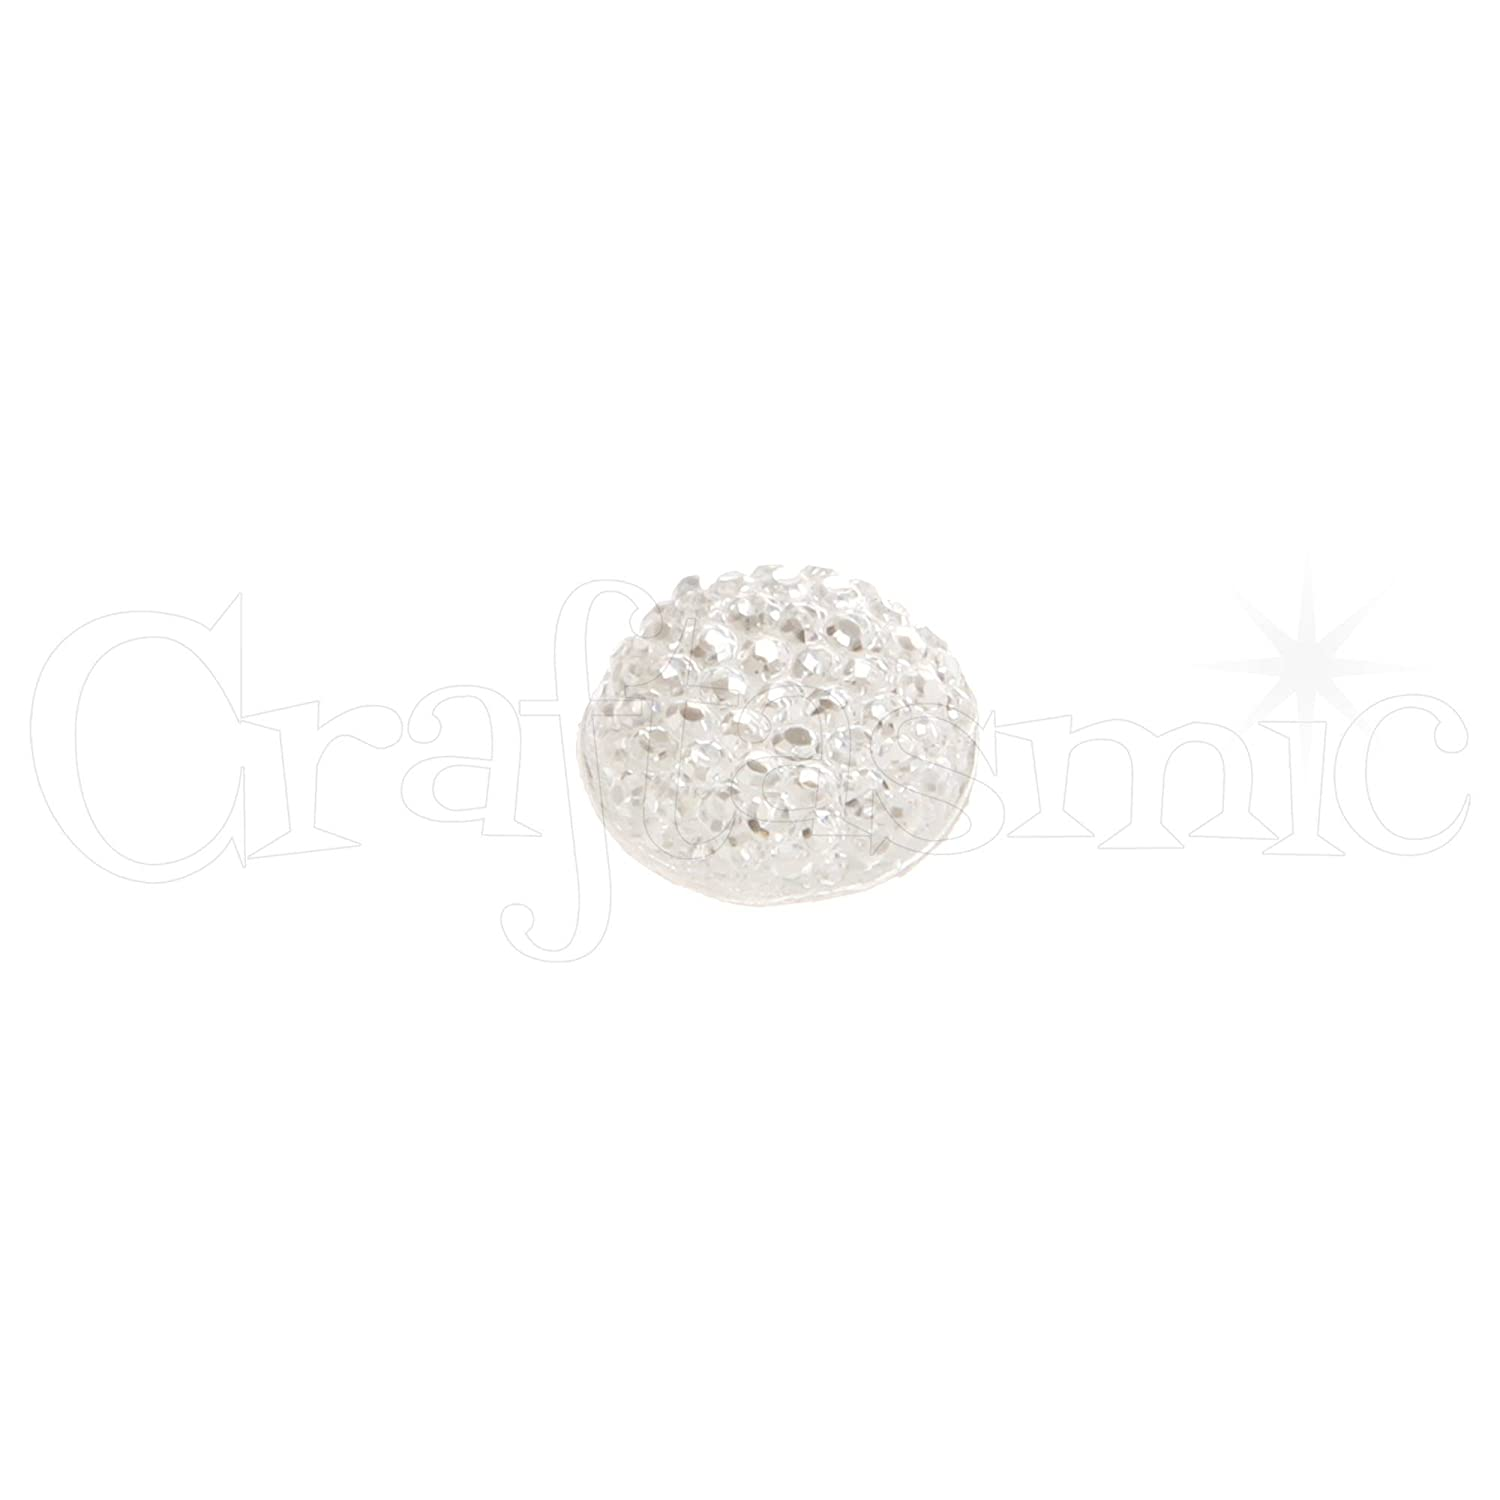 Creative Expressions Dazzlers Clear Circles 12mm 24 Embellishments 12 mm